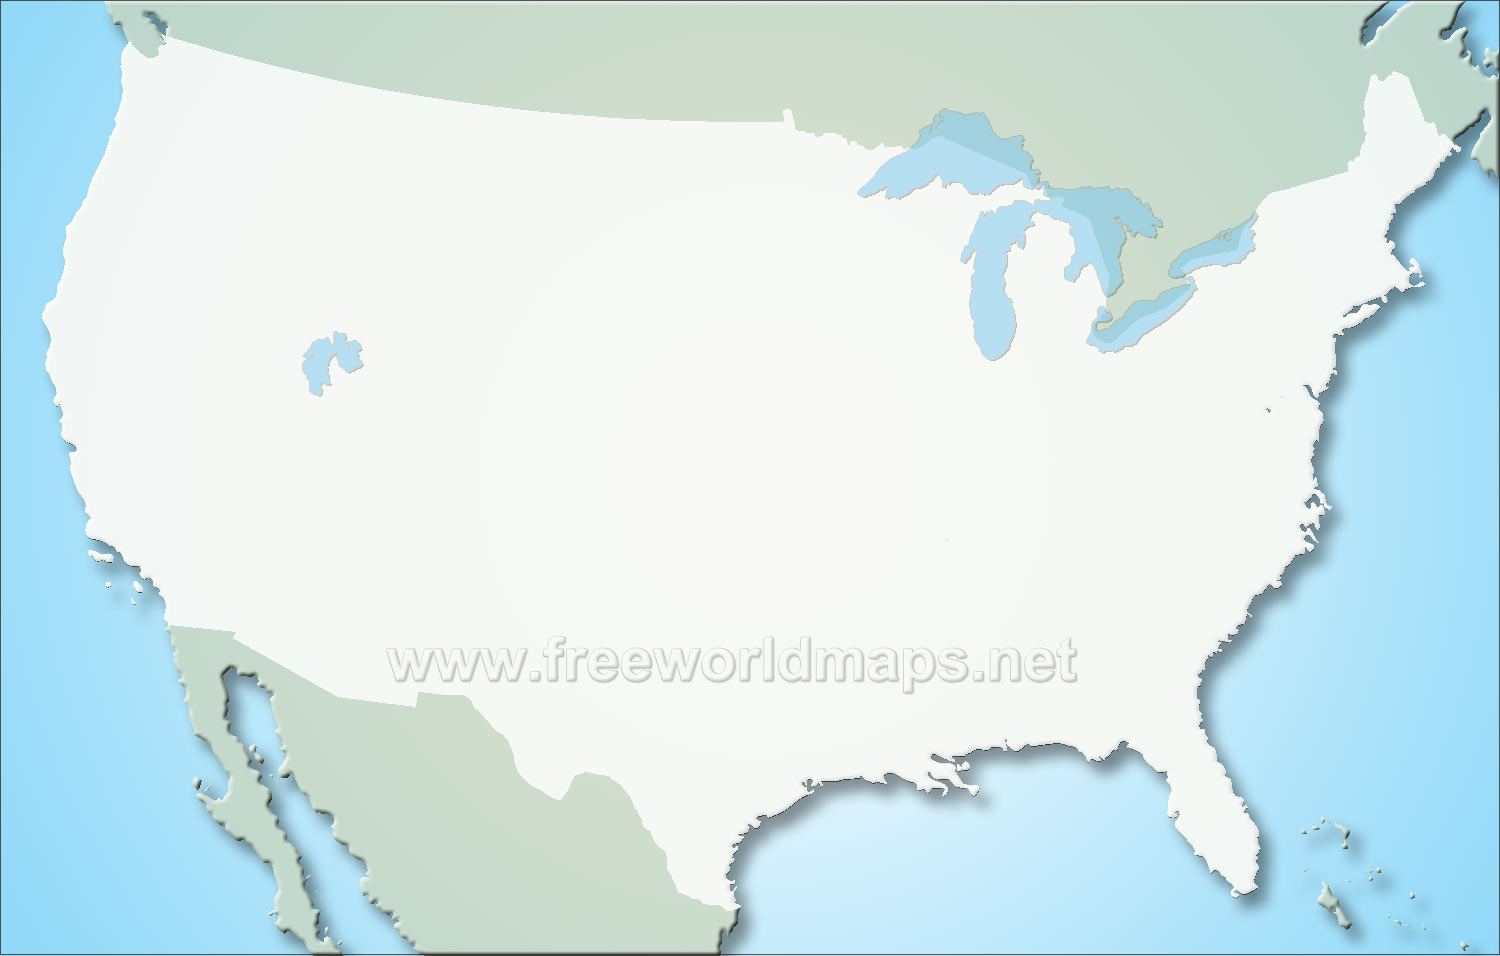 United States Blank Map - by Freeworldmaps.net